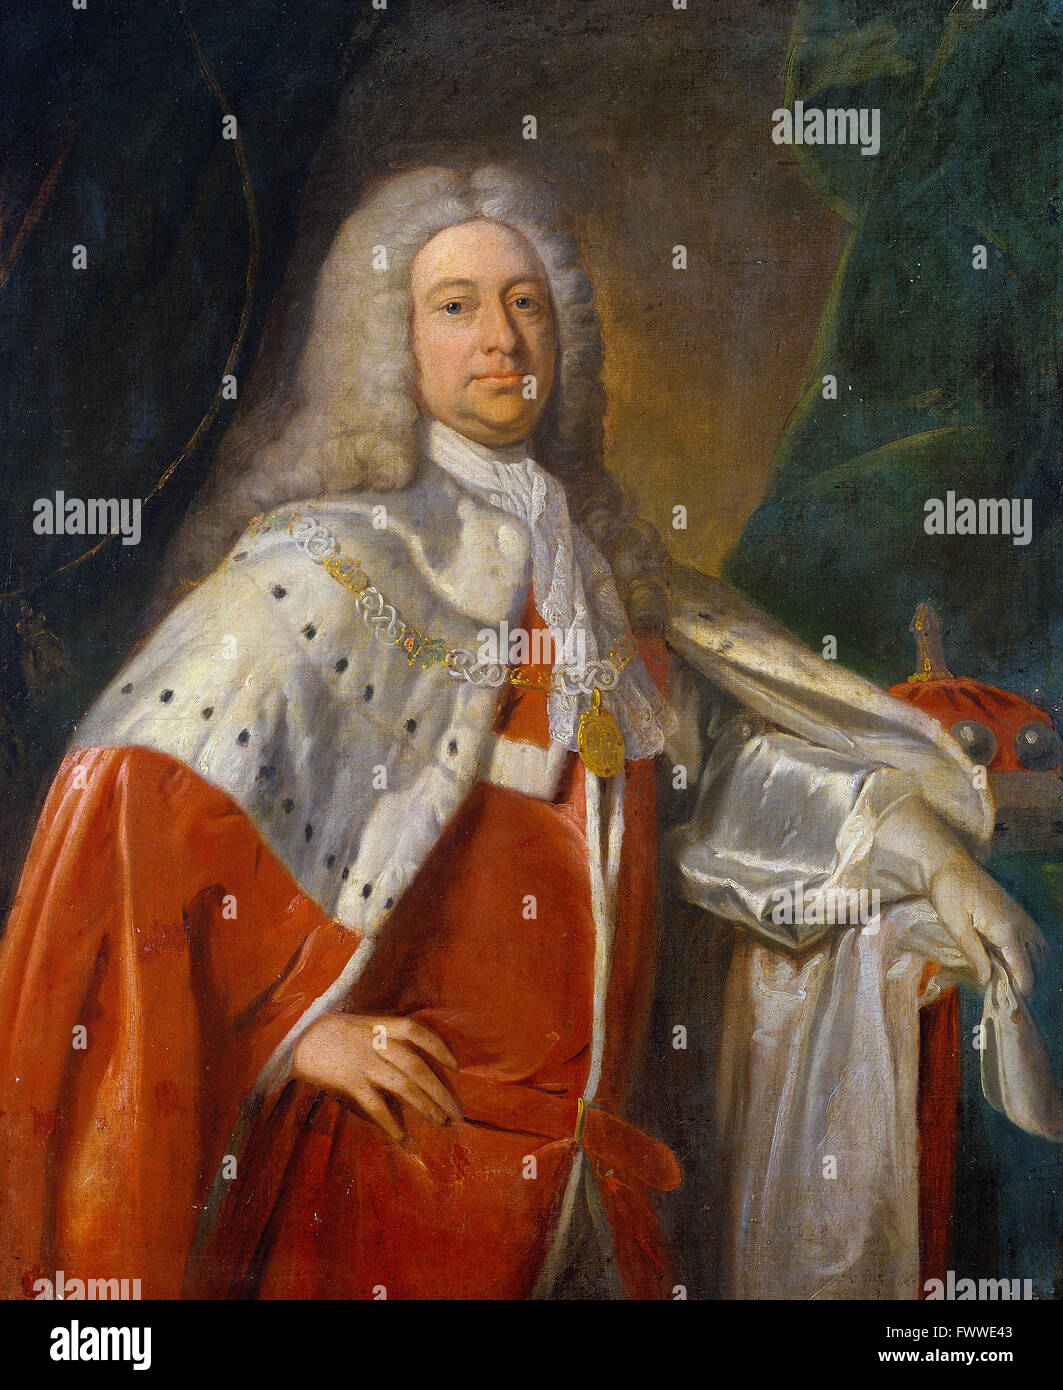 British - Portrait of a Baron - Stock Image